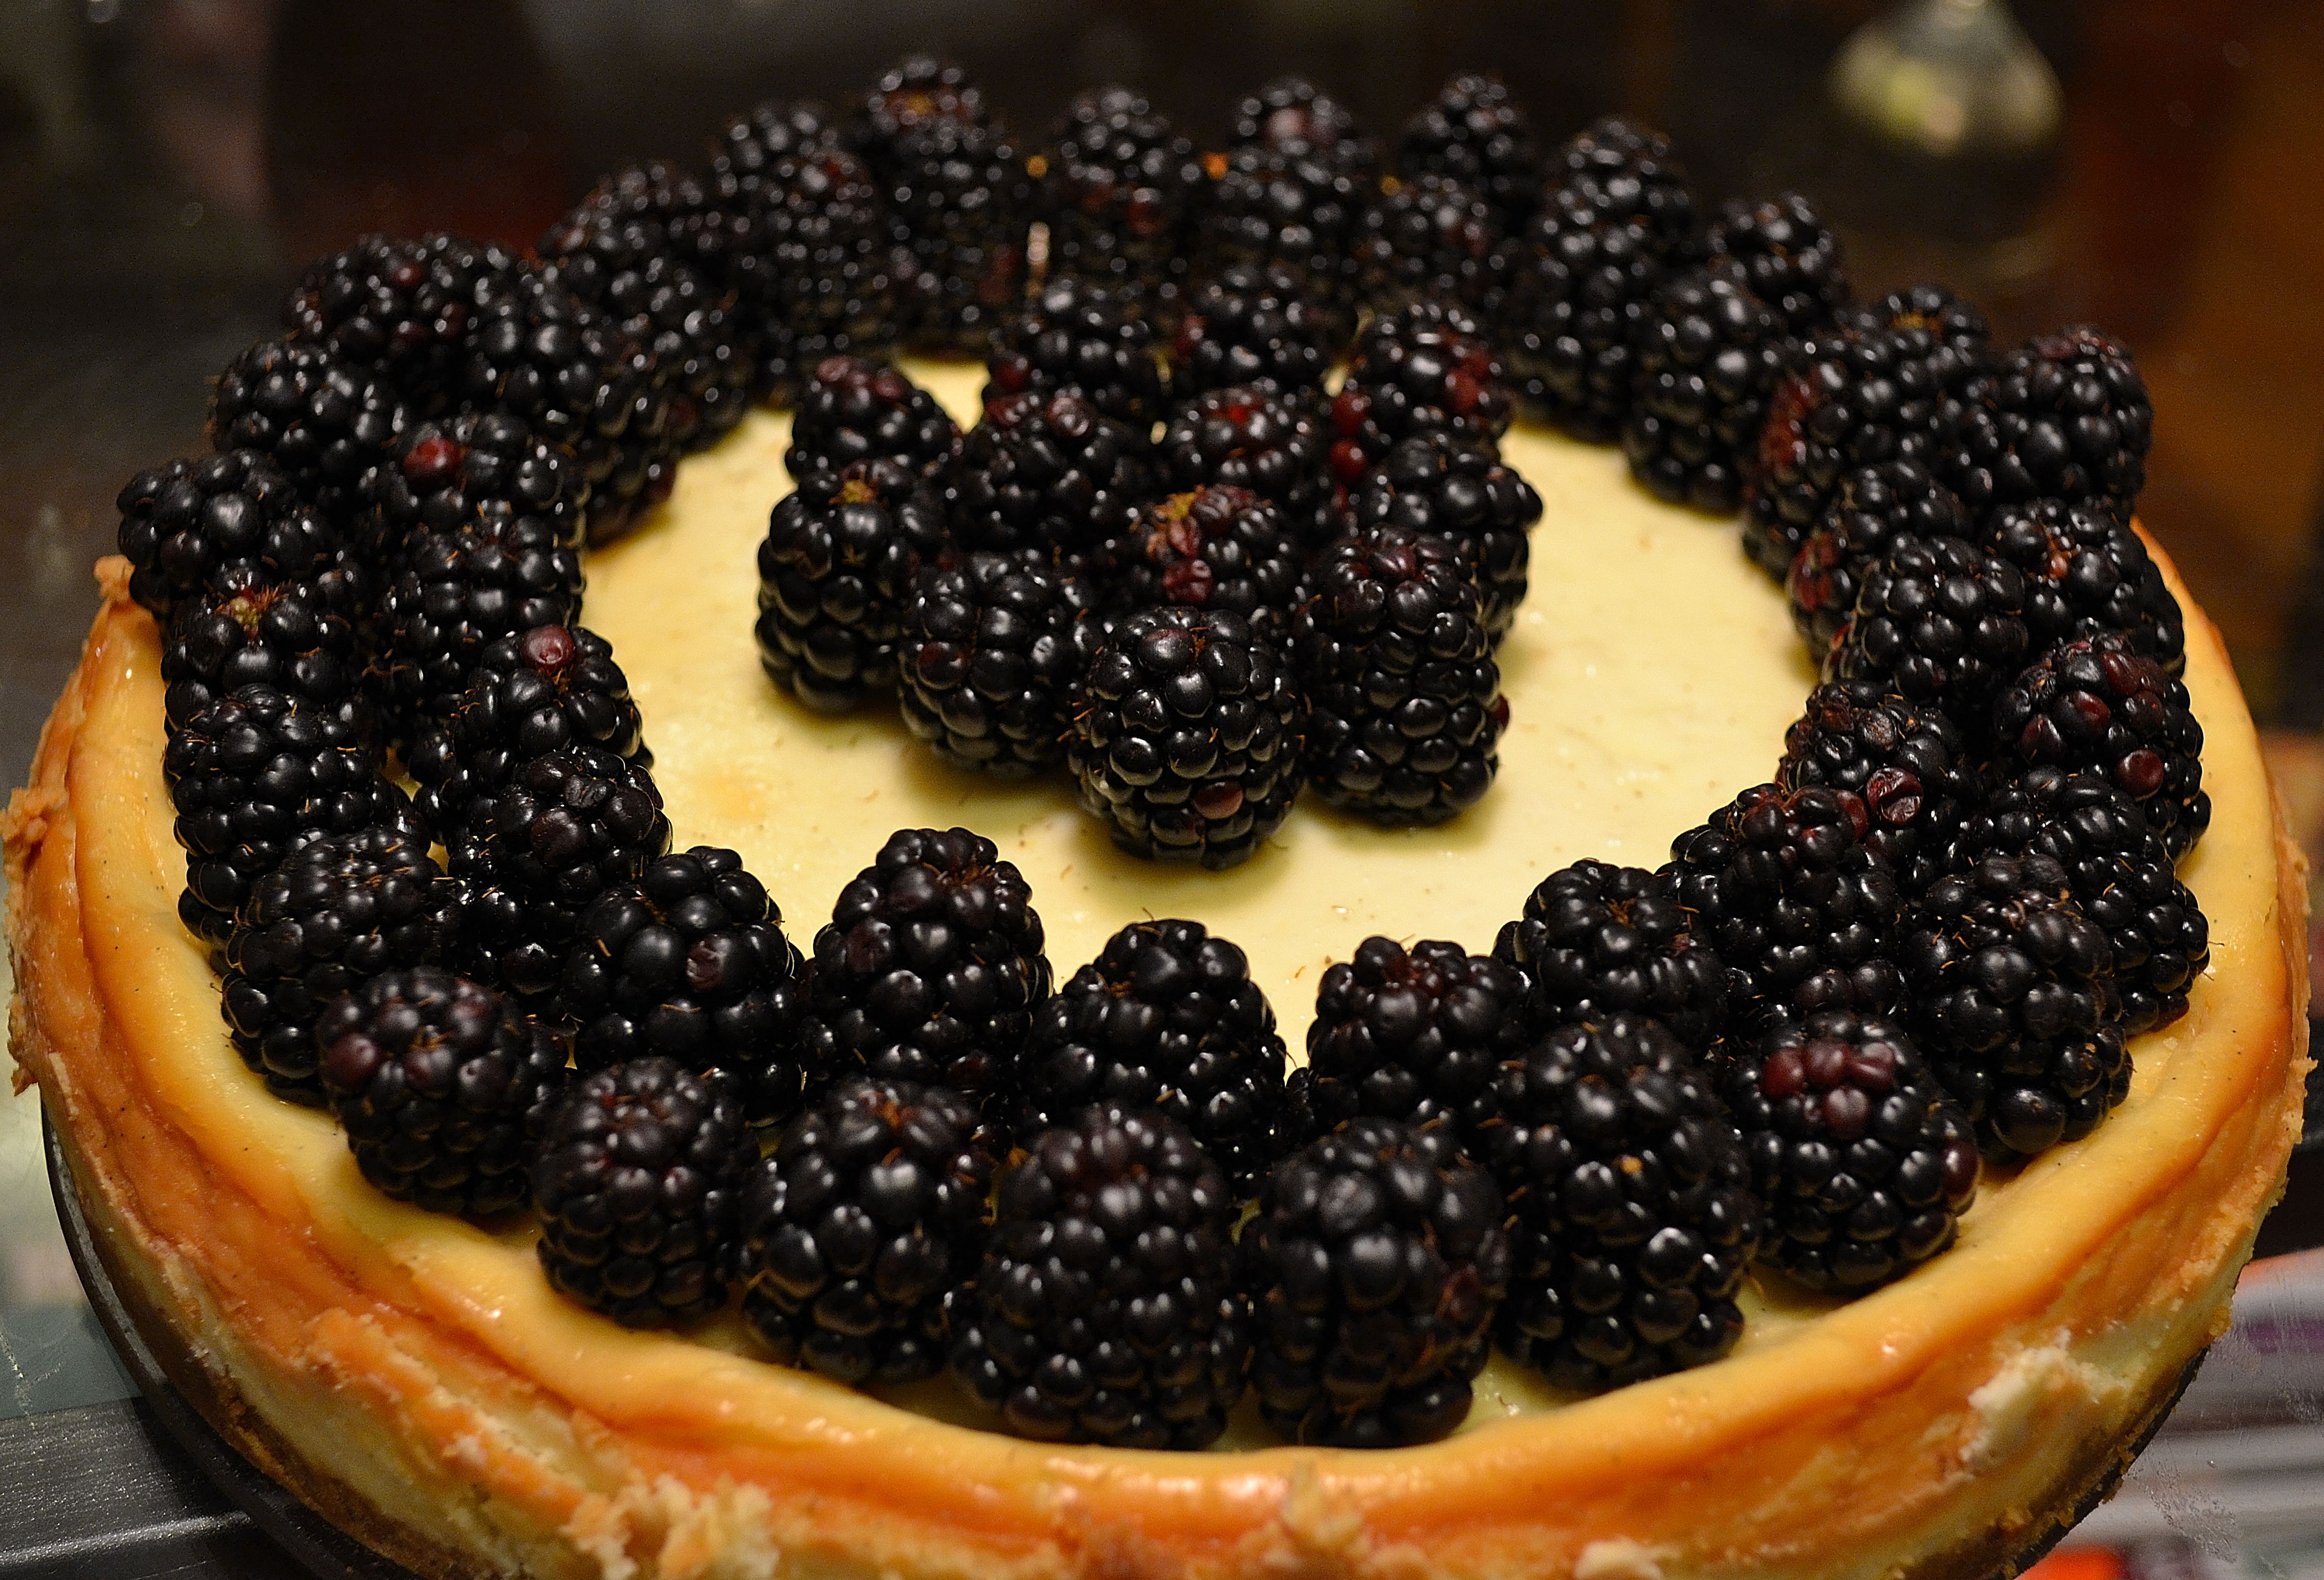 Vanilla bean and crme frache cheesecake with blackberries the vanilla bean and crme frache cheesecake with blackberries forumfinder Gallery